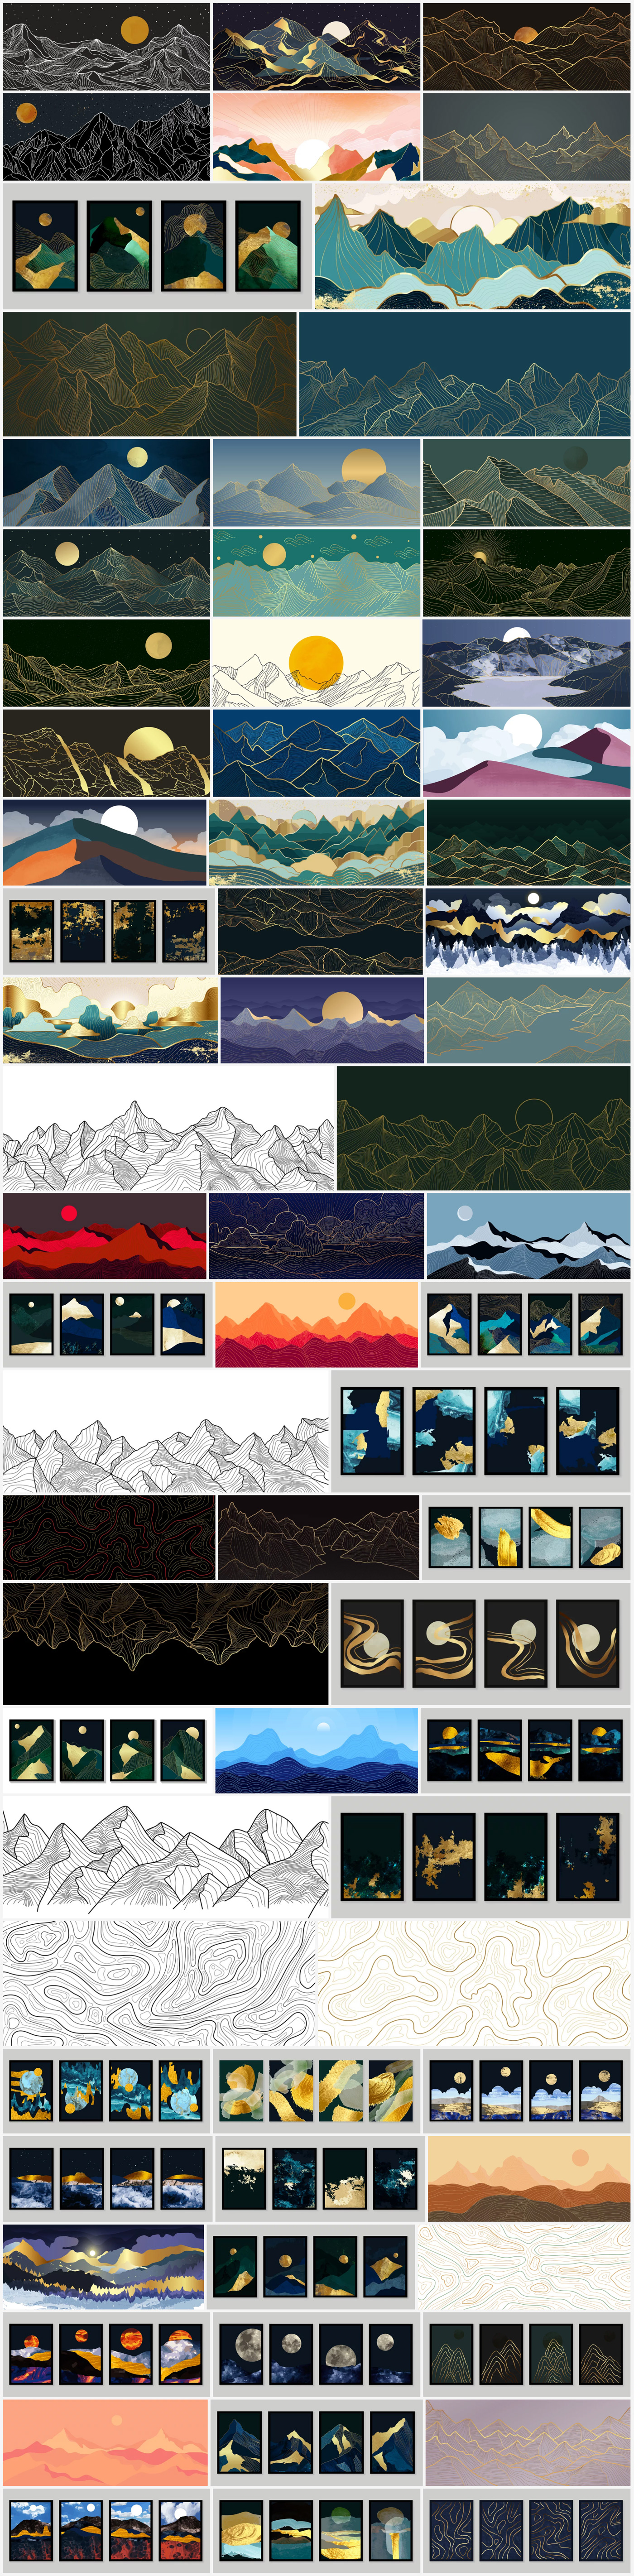 Download Vector illustrations of Landscape Wallpaper Artworks